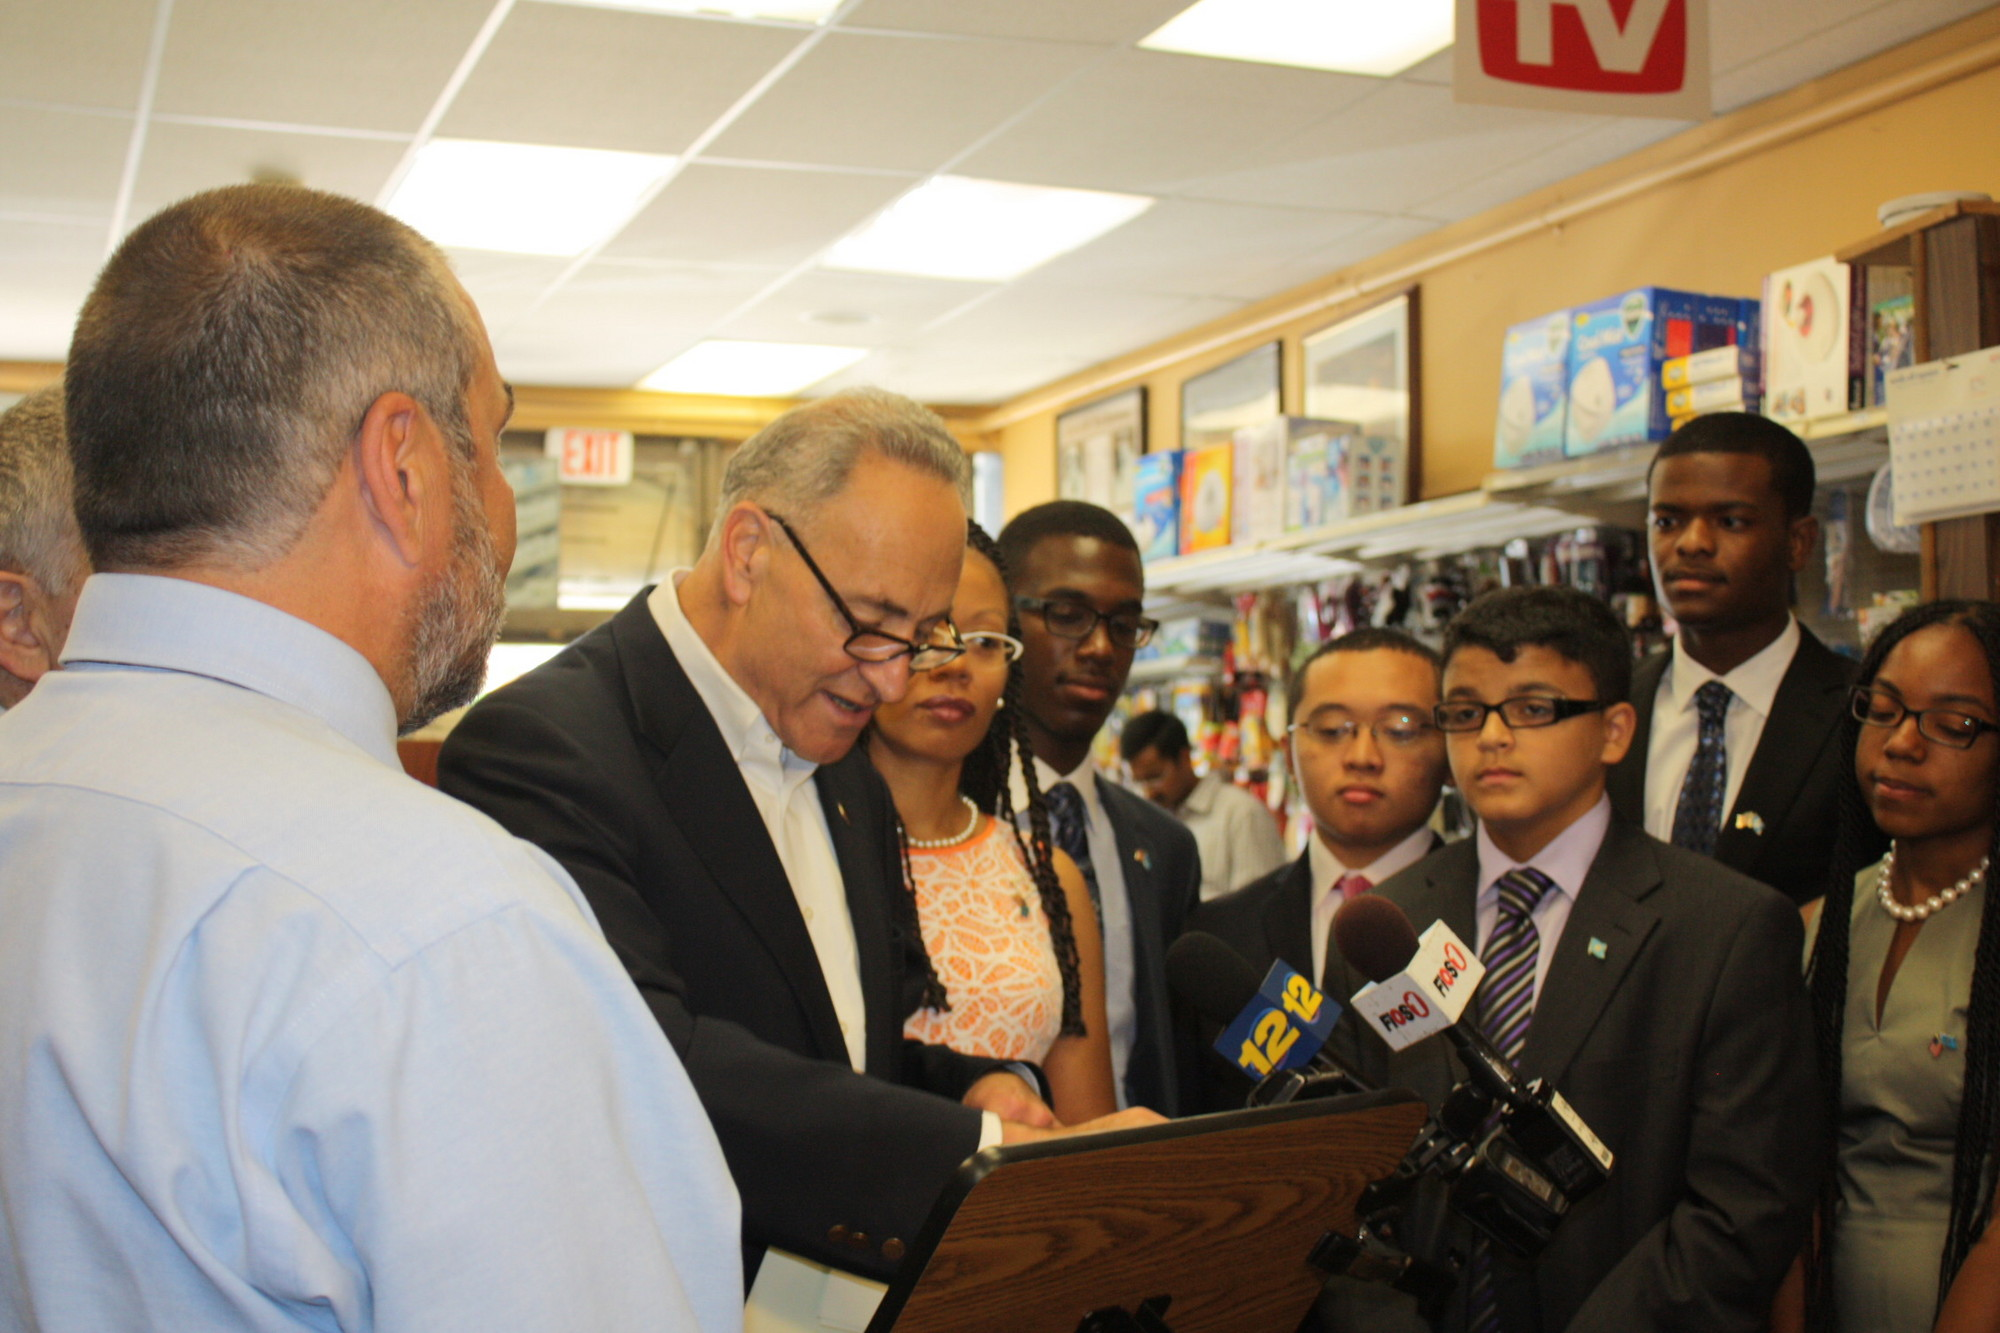 U.S. Senator Charles E. Schumer, center, honored the Elmont Memorial Model U.N. team on Aug. 15 in Farmingdale. Students were presented with proclamations as school Principal John Capozzi, left, proudly watched his team.